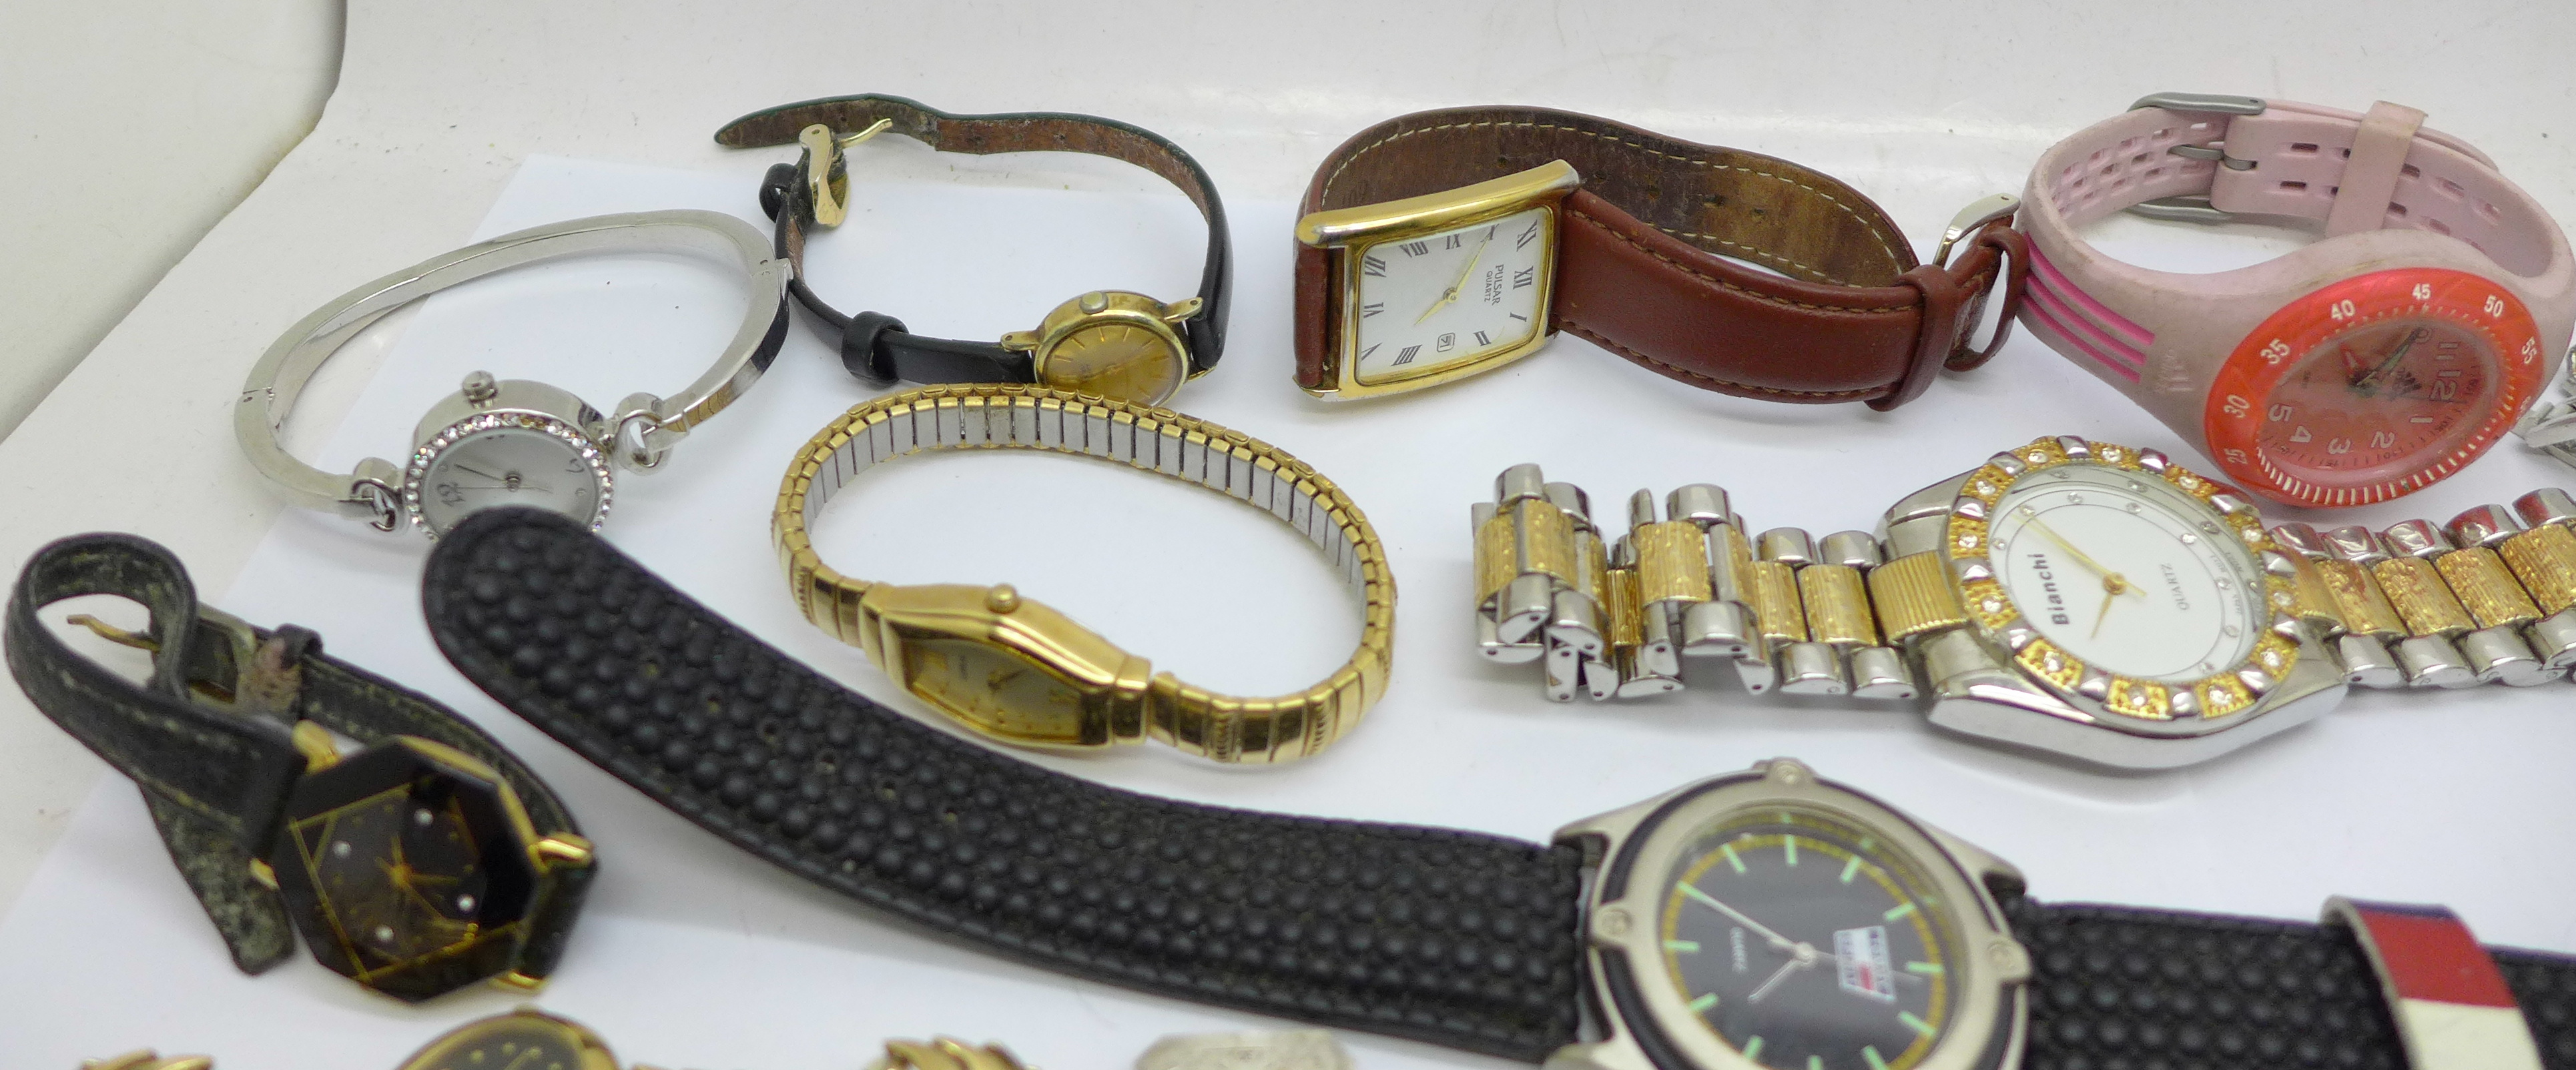 Wristwatches, pocket watches, etc., including Swatch and Seiko - Image 3 of 5